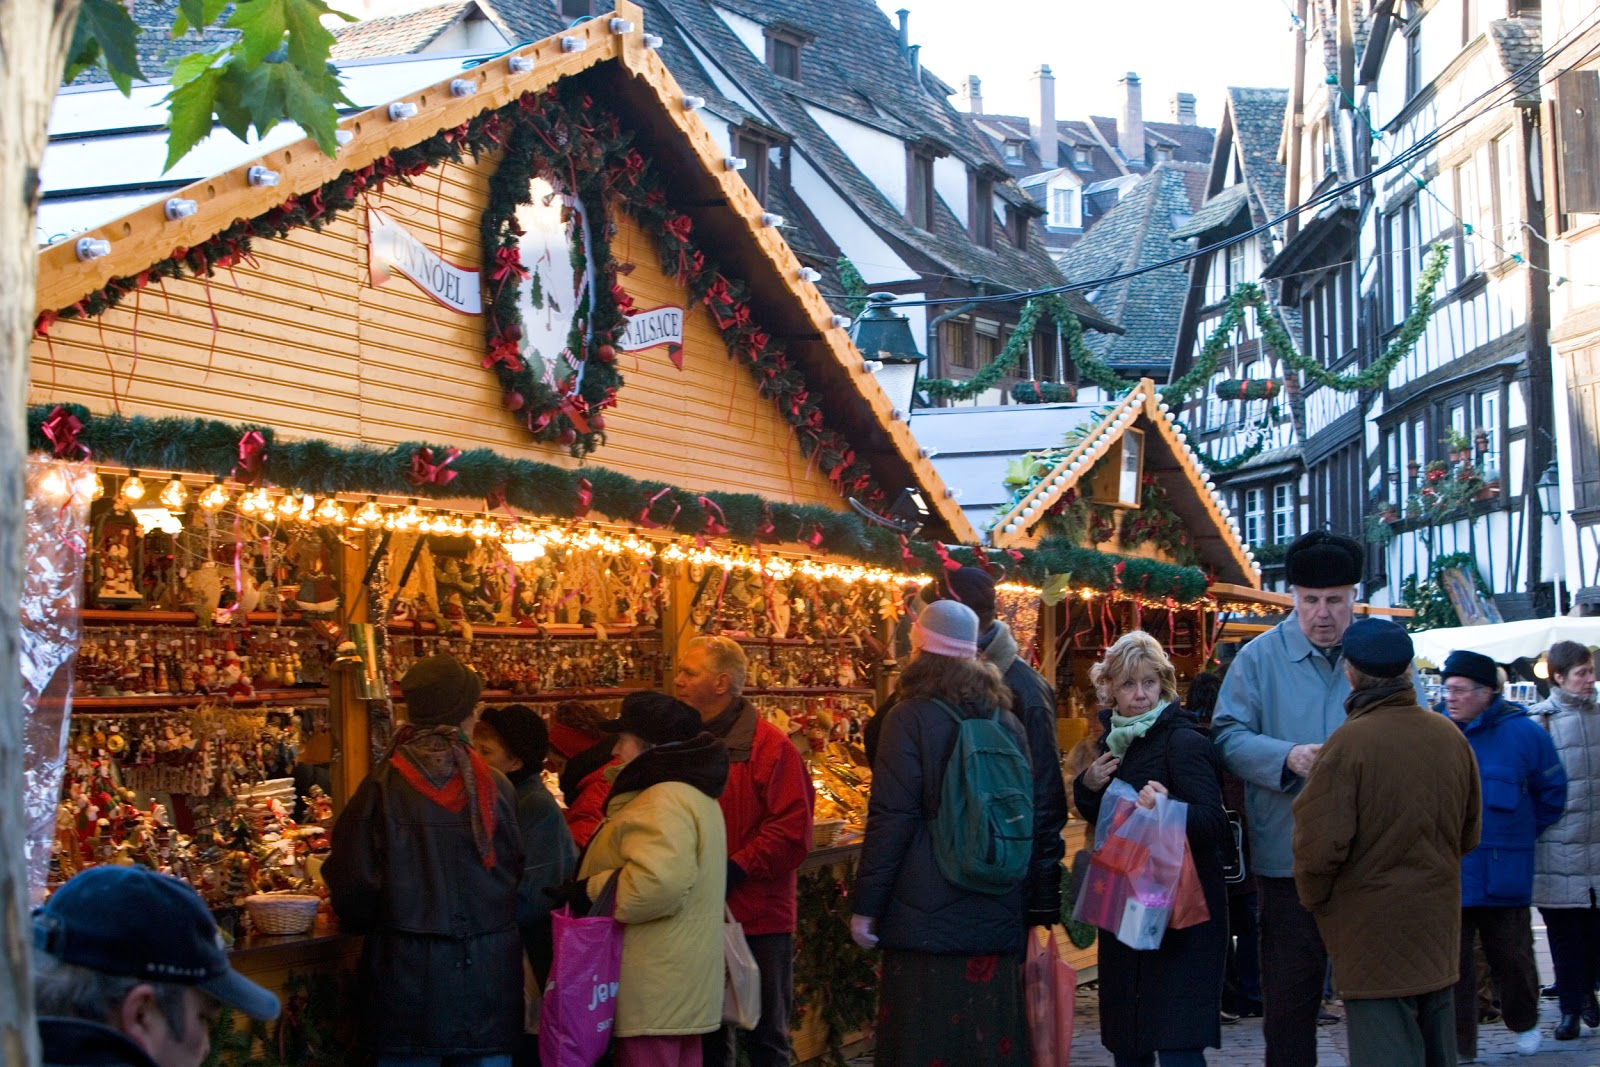 Strasbourg's Christmas Market Chalets offer delightfully decorated stalls brimming with hand-crafted gifts and ornaments not to mention the tantalizing aromas wafting through the air with the promise of gourmet delights and spicy mulled wine. © CRTA - Meyer.